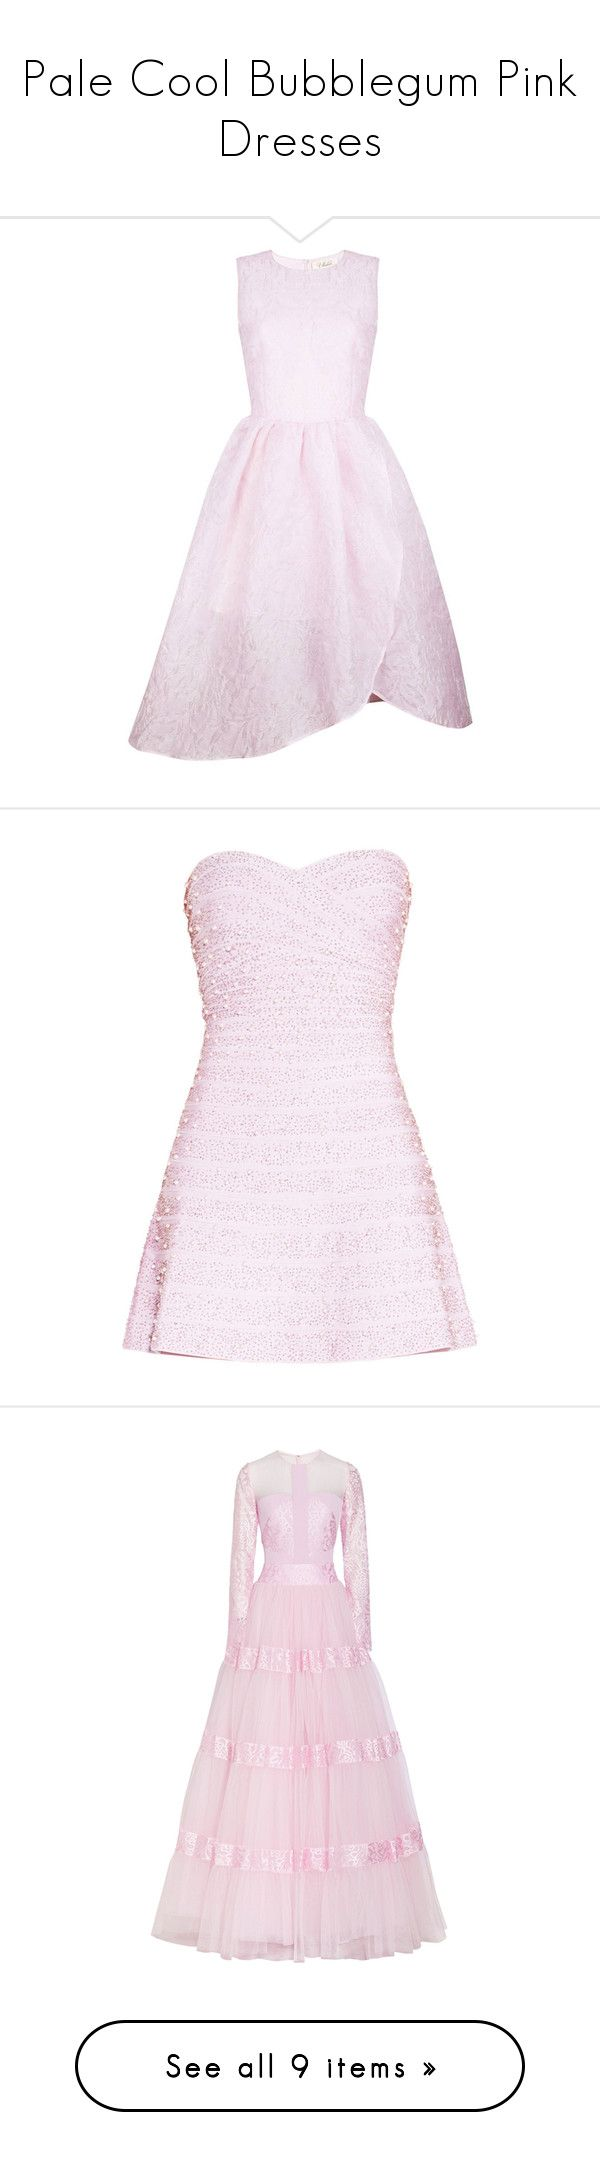 """Pale Cool Bubblegum Pink Dresses"" by tegan-b-riley on Polyvore featuring dresses, abiti, pink cocktail dress, pink sparkly dress, pink dress, full midi skirts, sparkly dresses, herve leger, pearl dress and pink strapless dress"